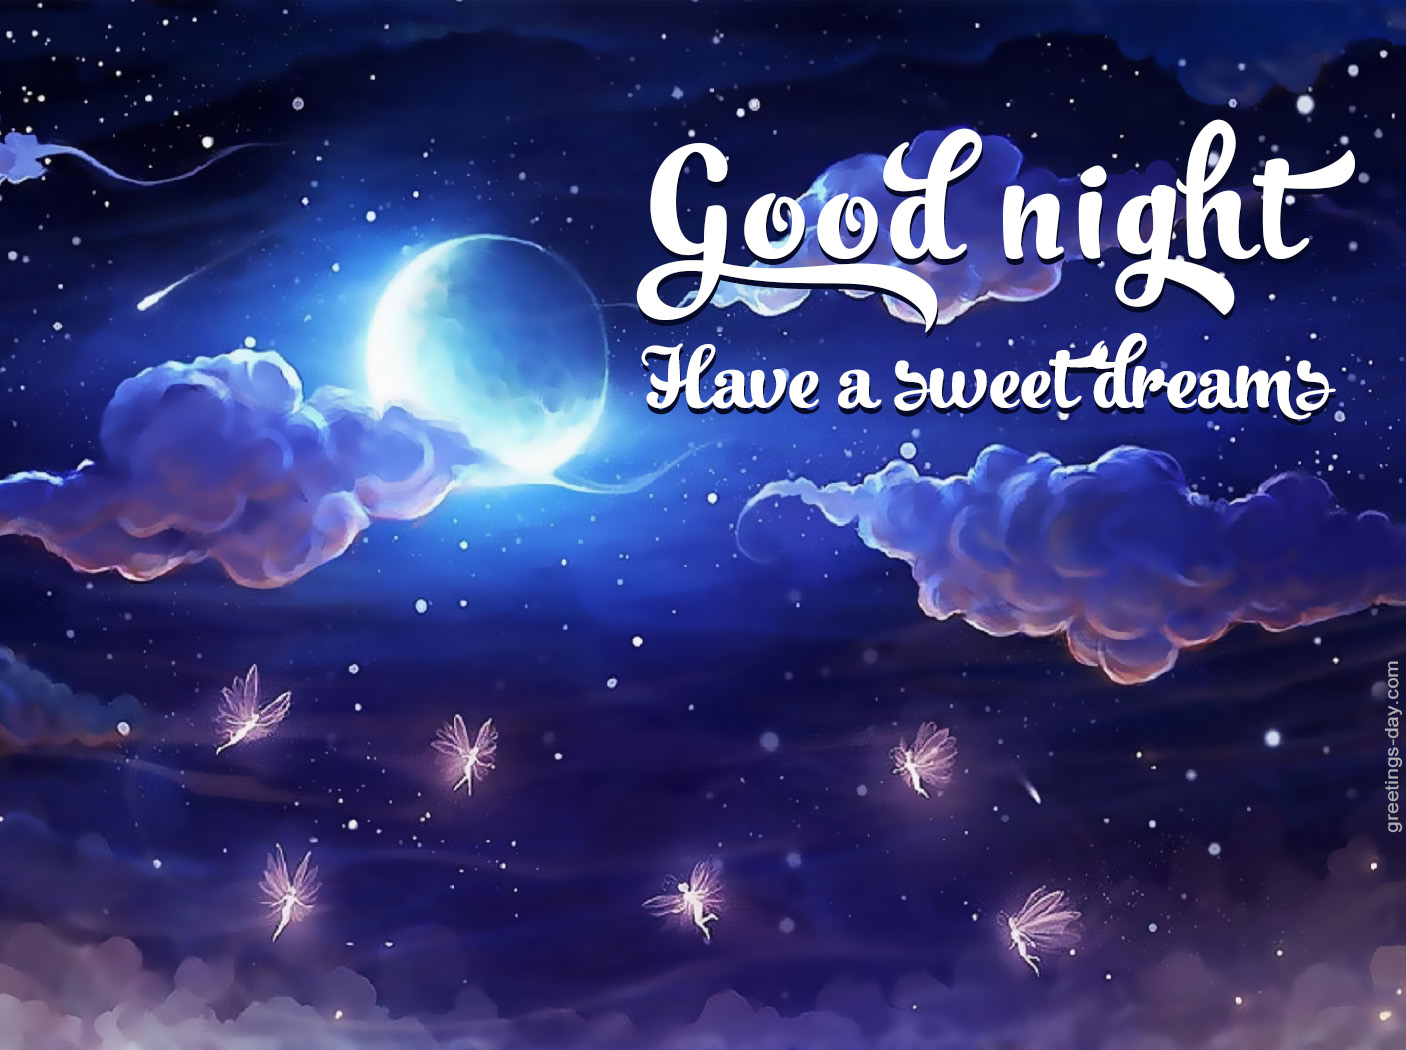 Good night – Free Daily Ecards & Pics